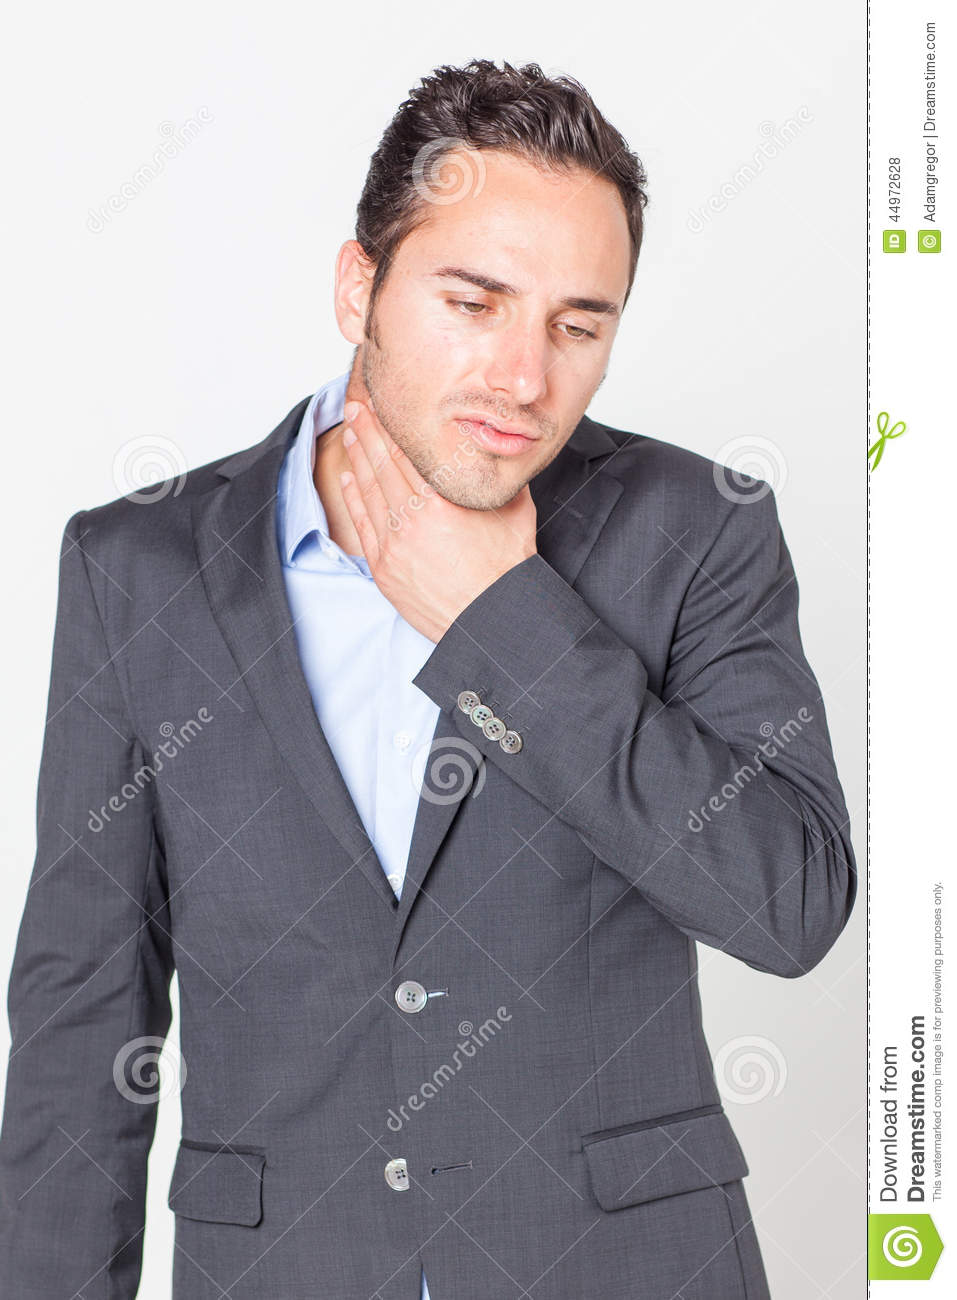 Businessman with throat problems